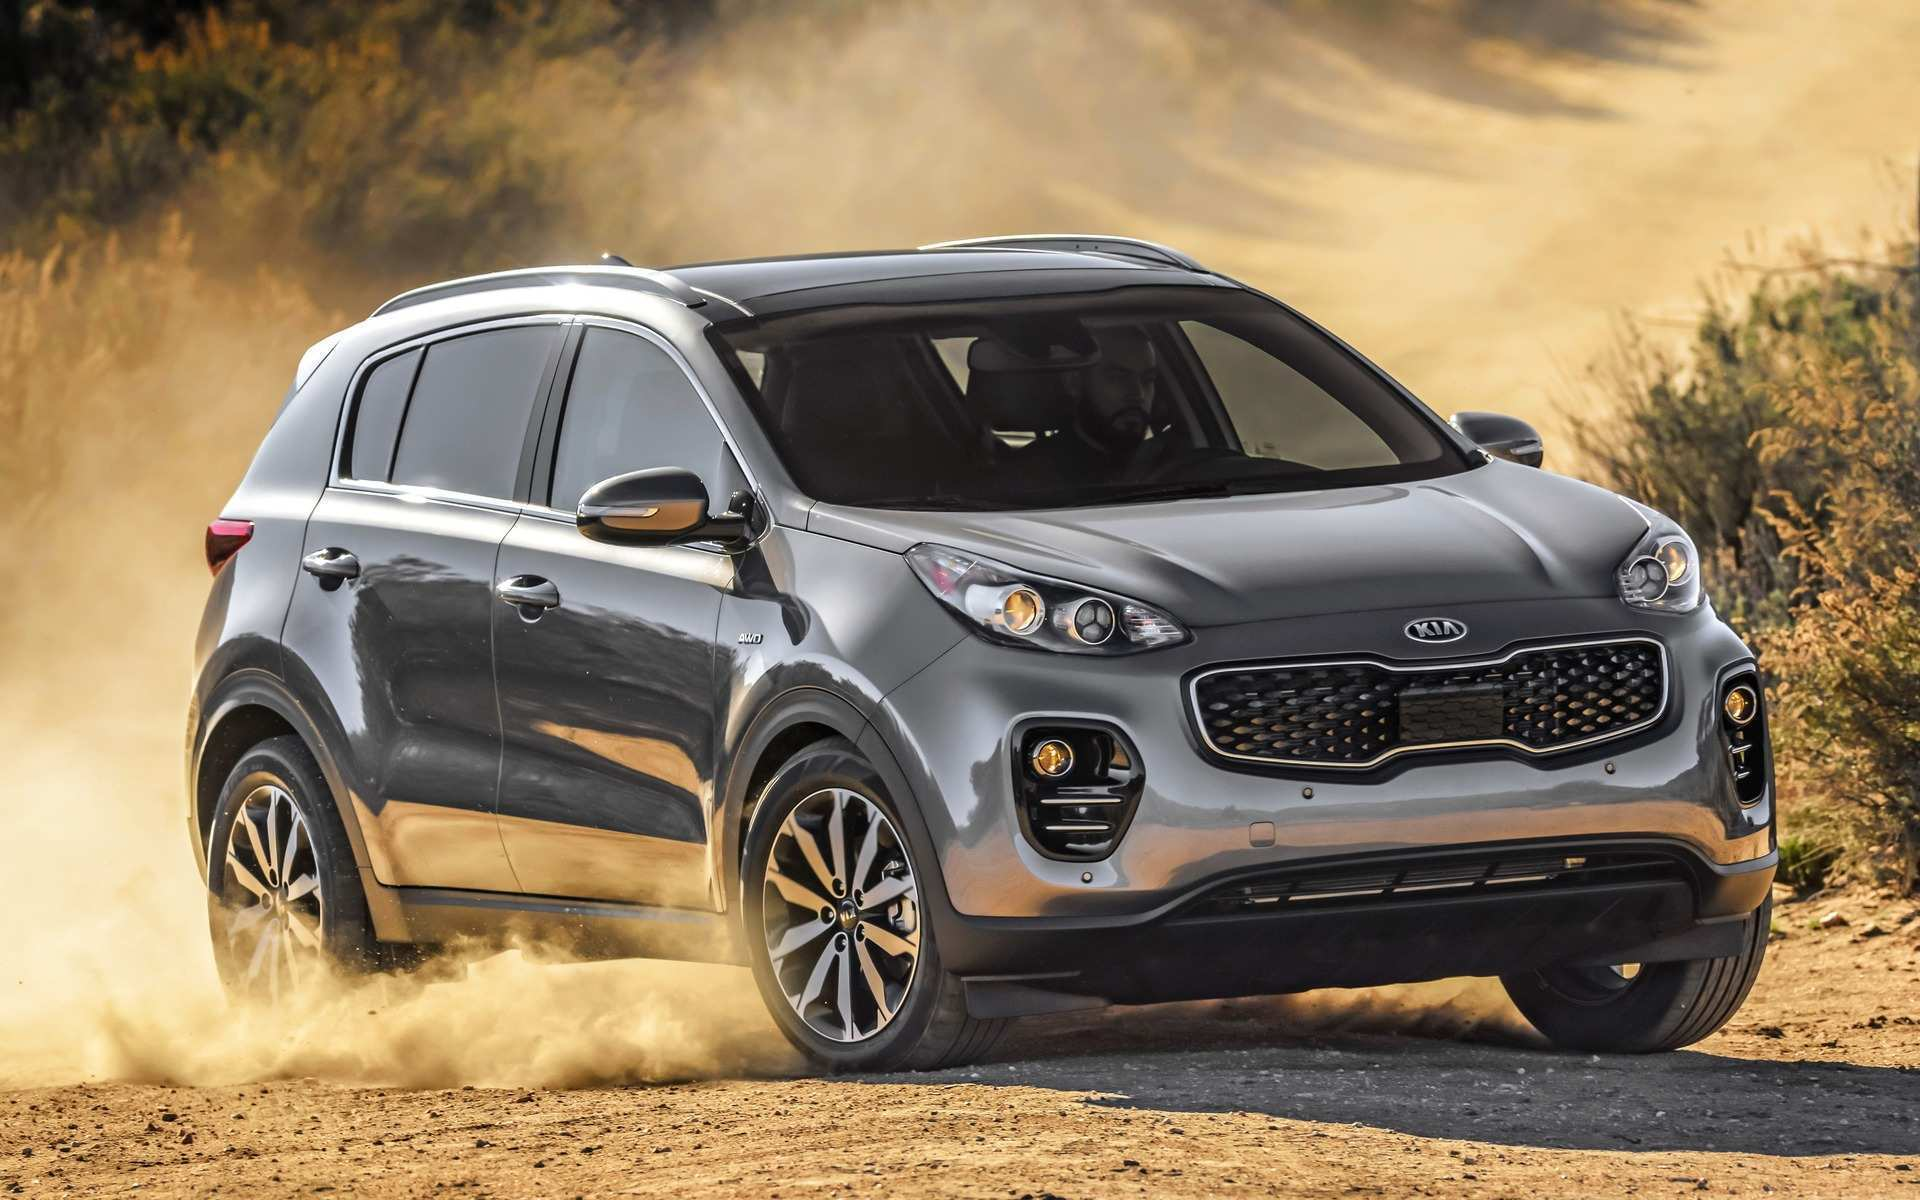 86 Great Best Kia Tucson 2019 Concept Redesign And Review Review with Best Kia Tucson 2019 Concept Redesign And Review